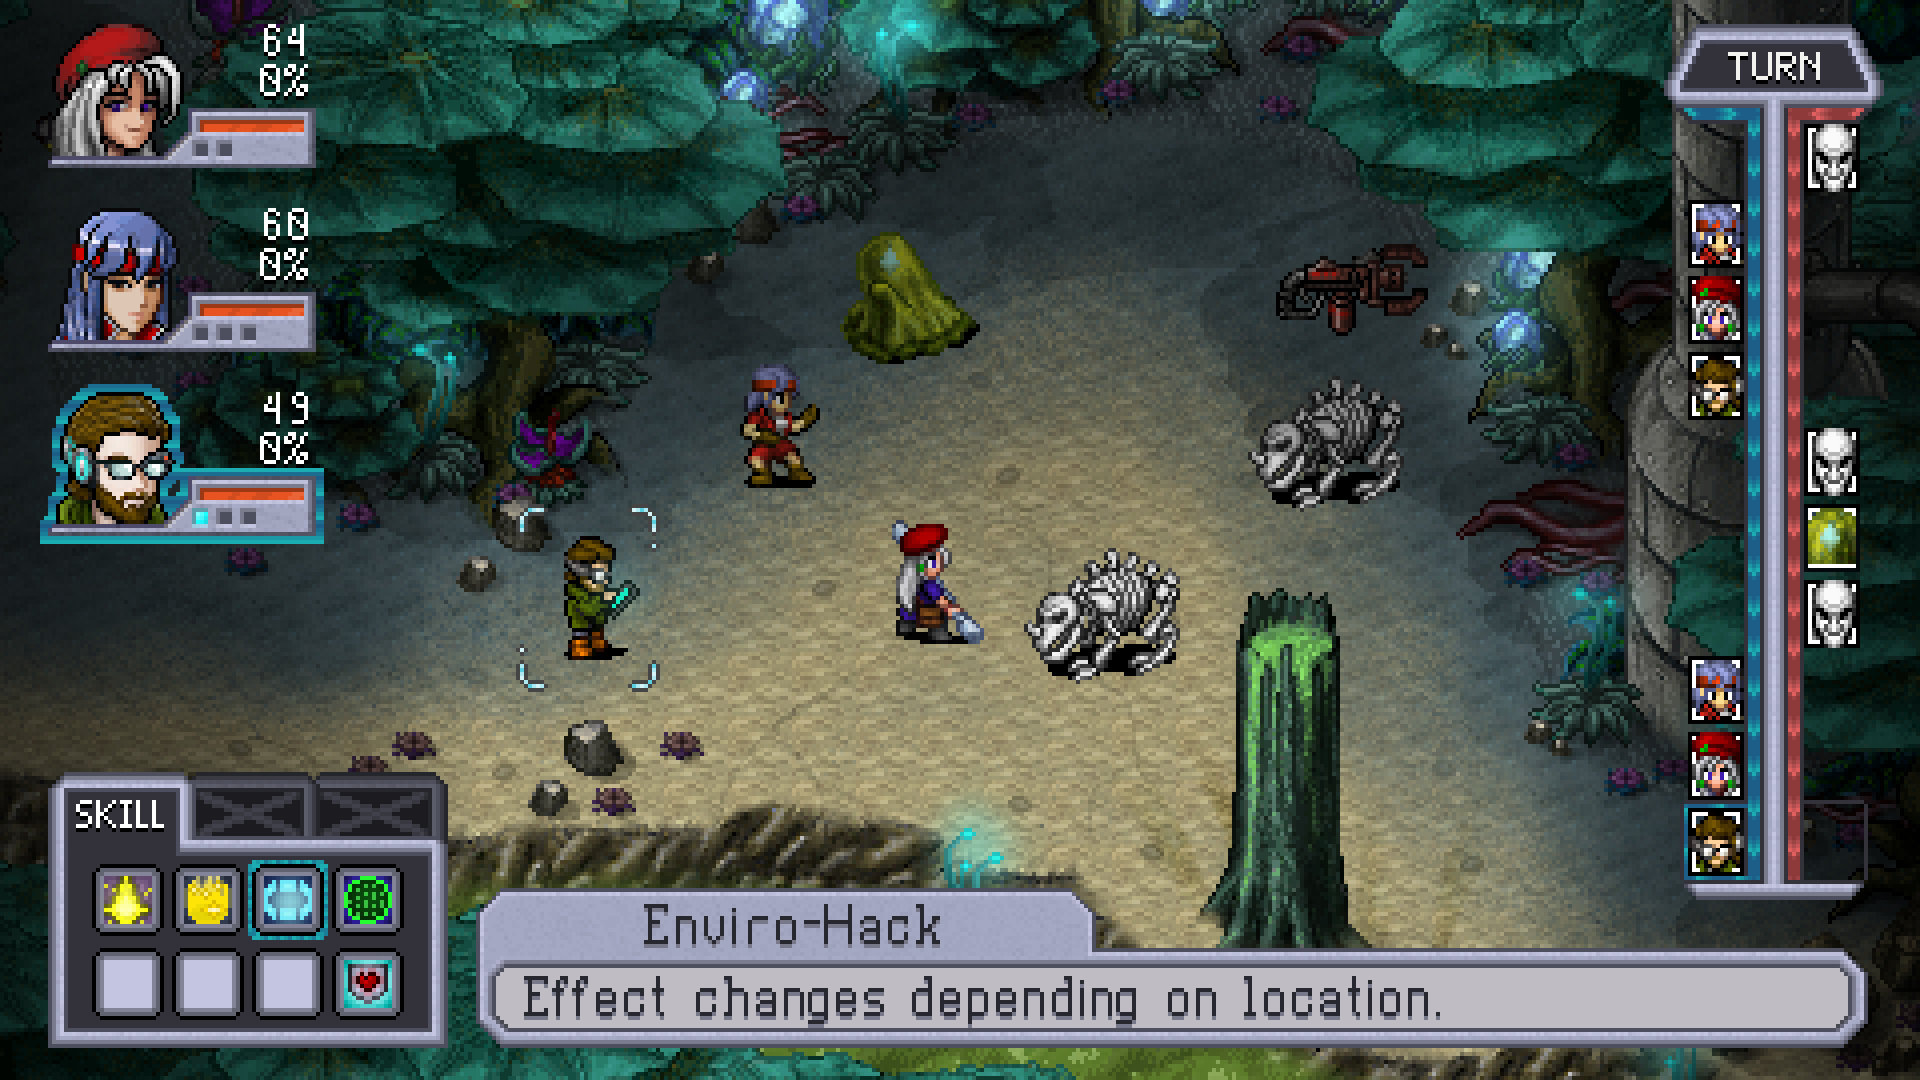 Cosmic Star Heroine - Hack the planet